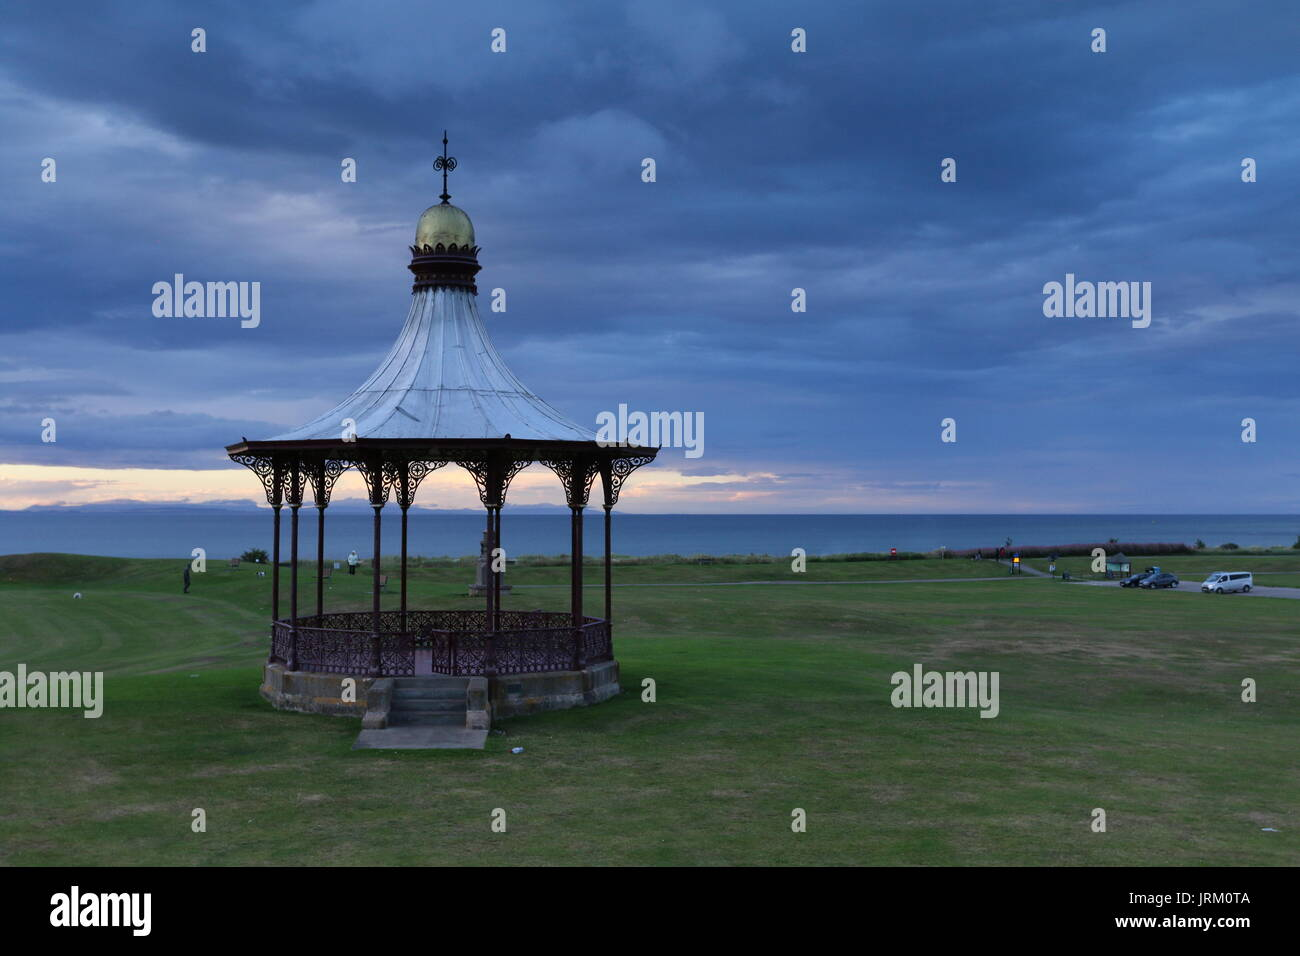 The Wallace Bandstand, Nairn, Scotland - Stock Image